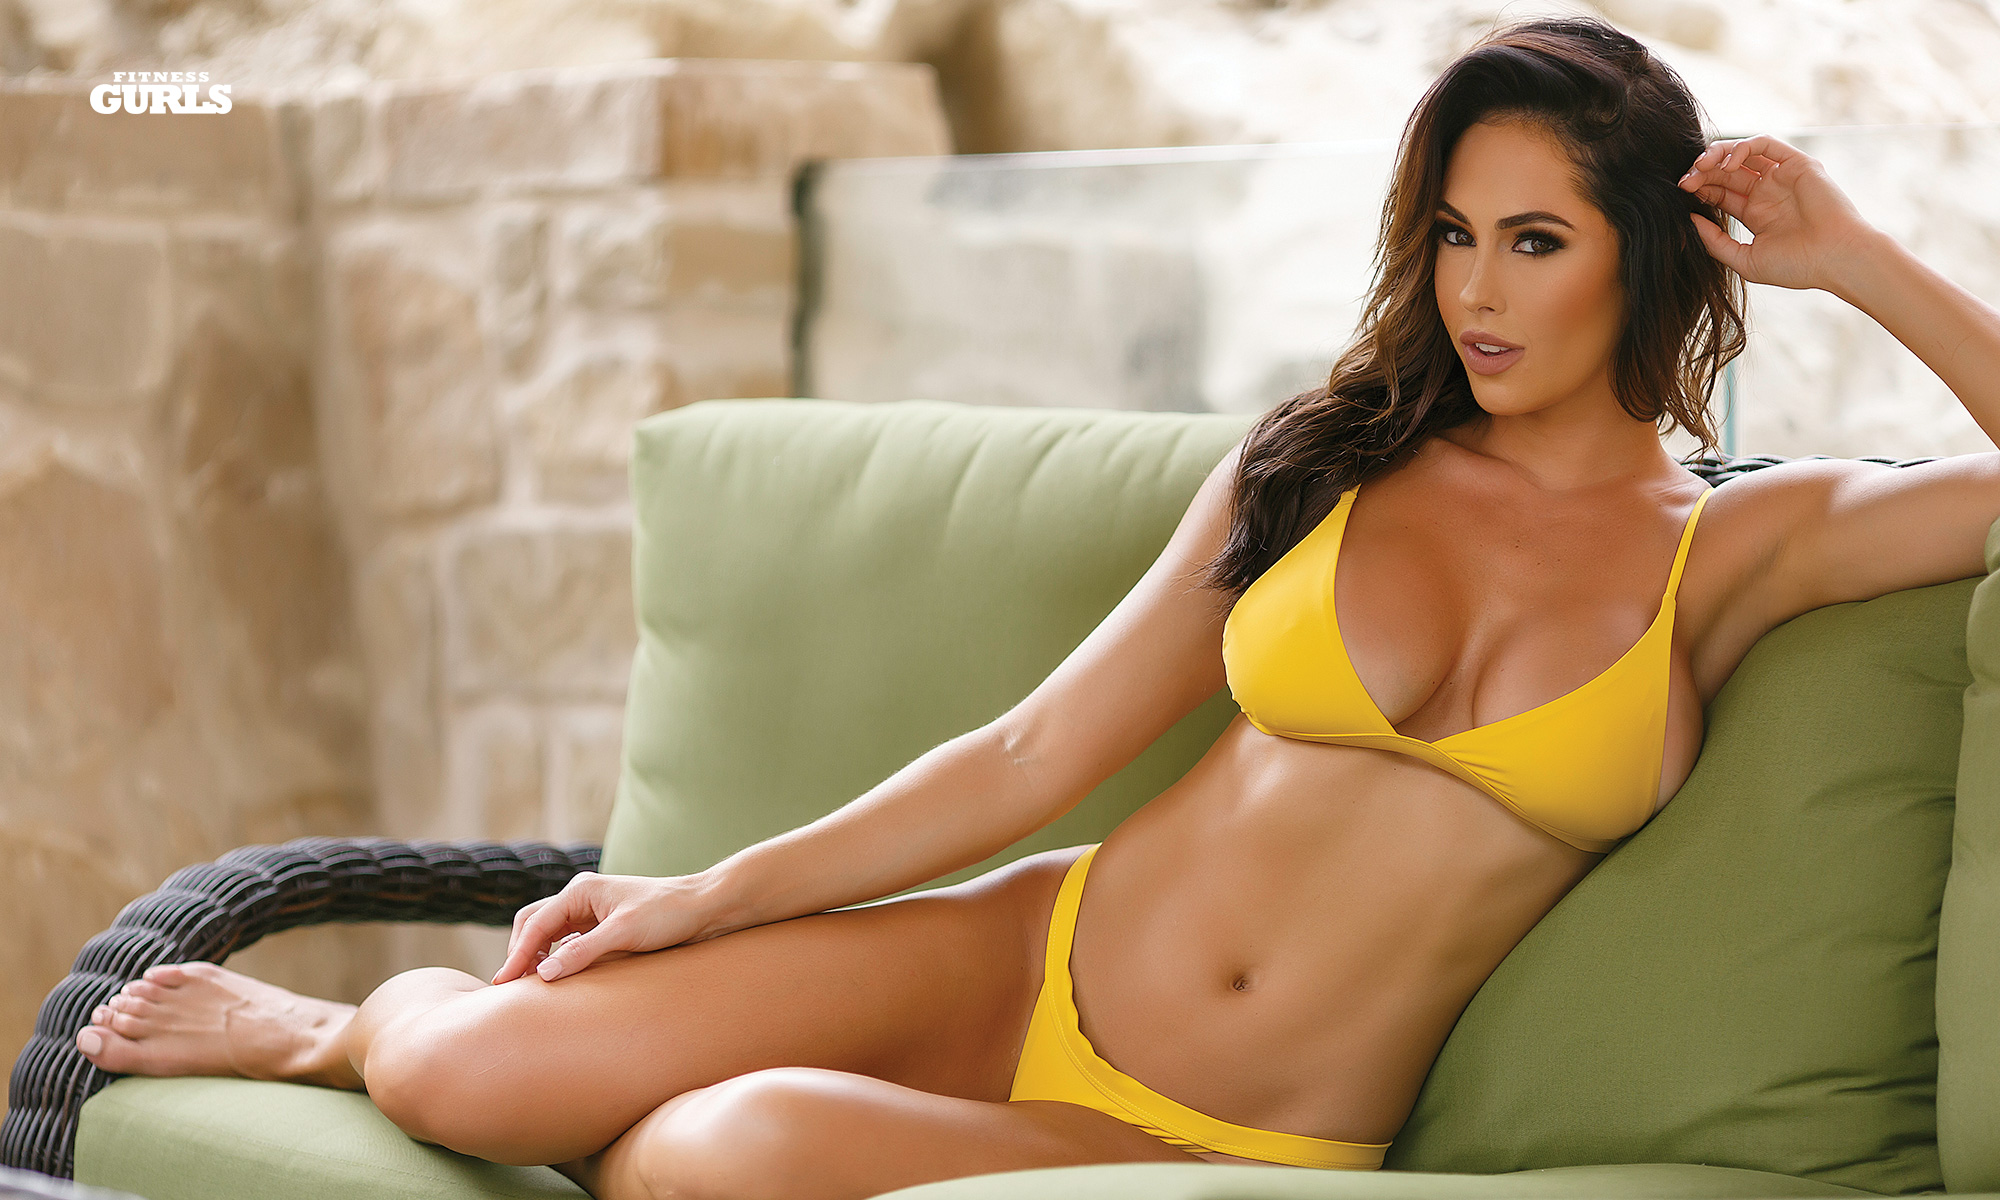 Video Hope Beel nude photos 2019